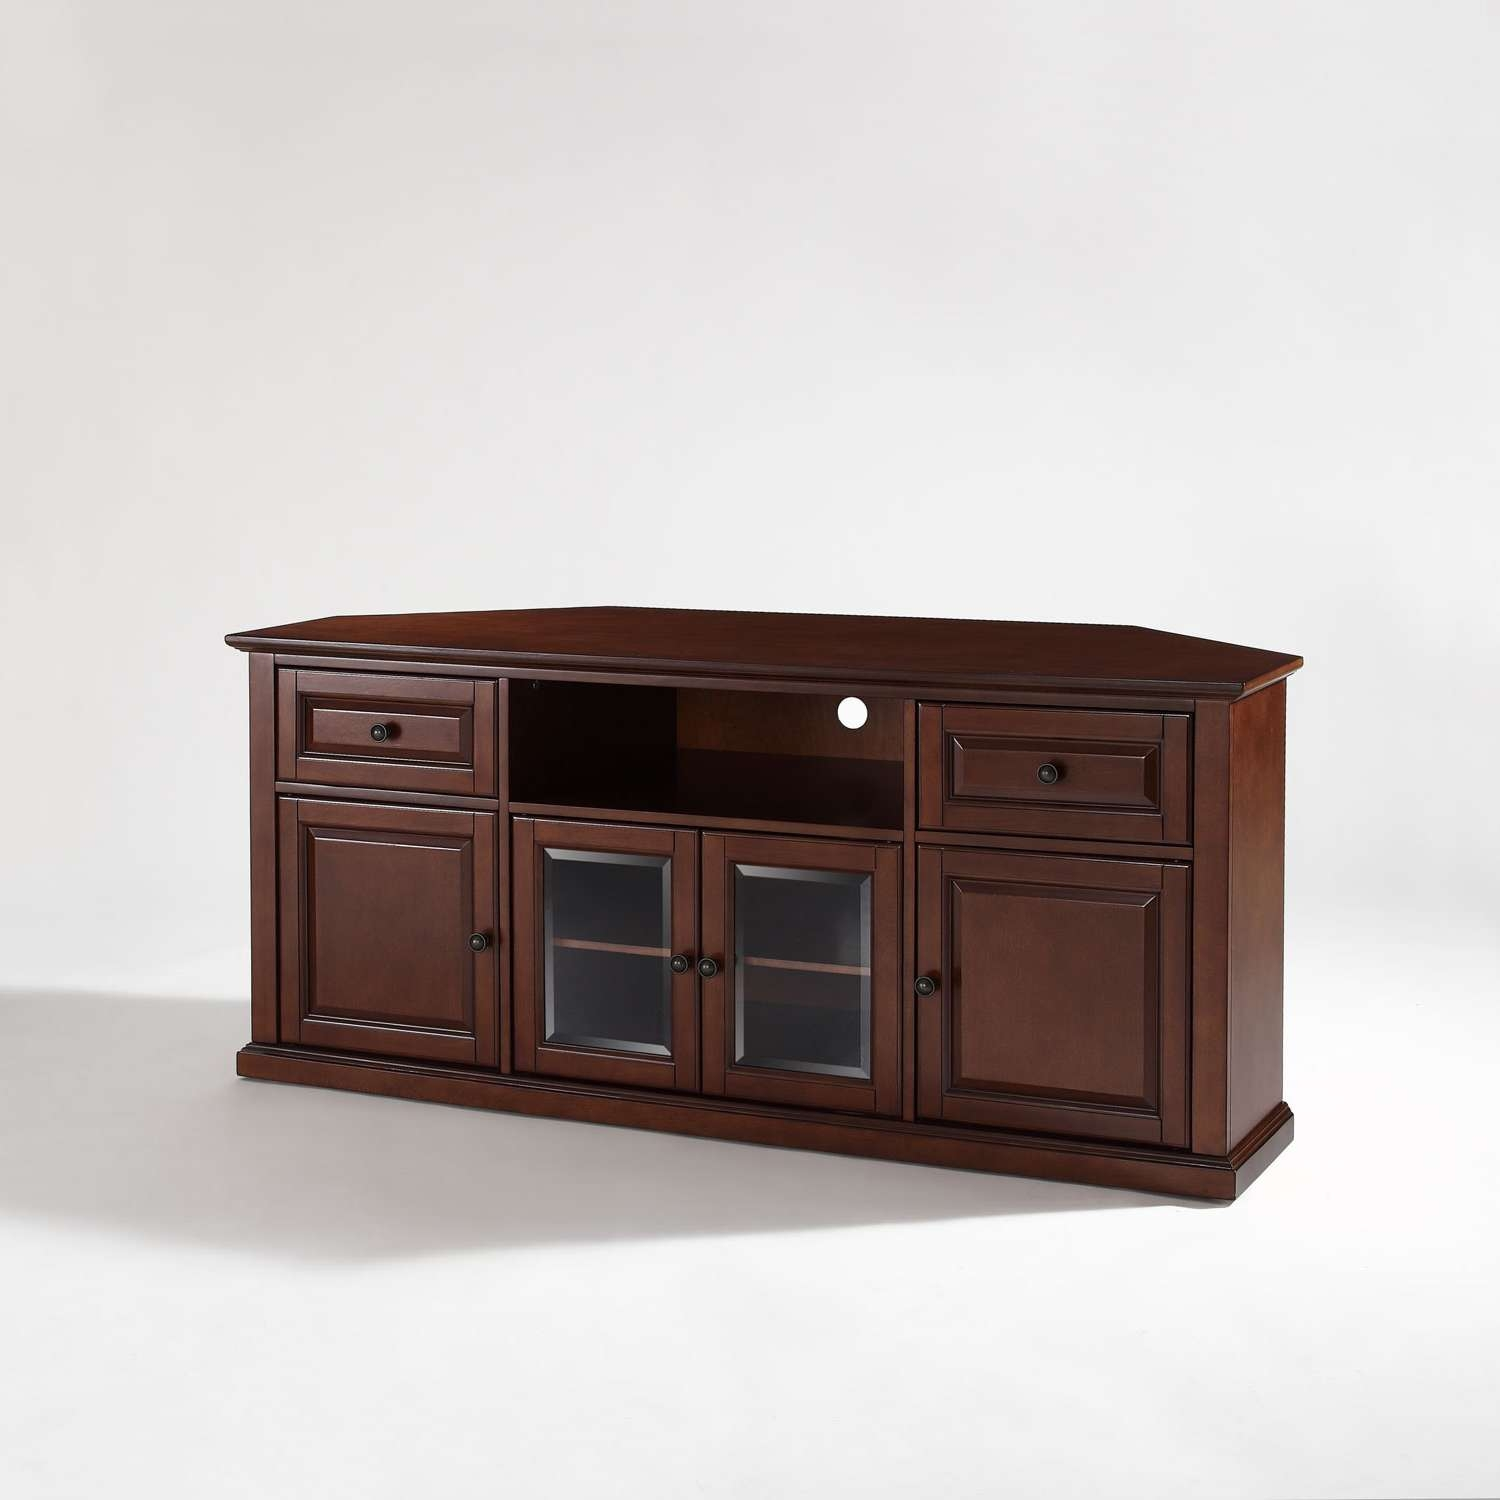 60 Inch Corner Tv Stand In Vintage Mahogany Crosley Furniture Within Vintage Tv Stands For Sale (Gallery 1 of 15)